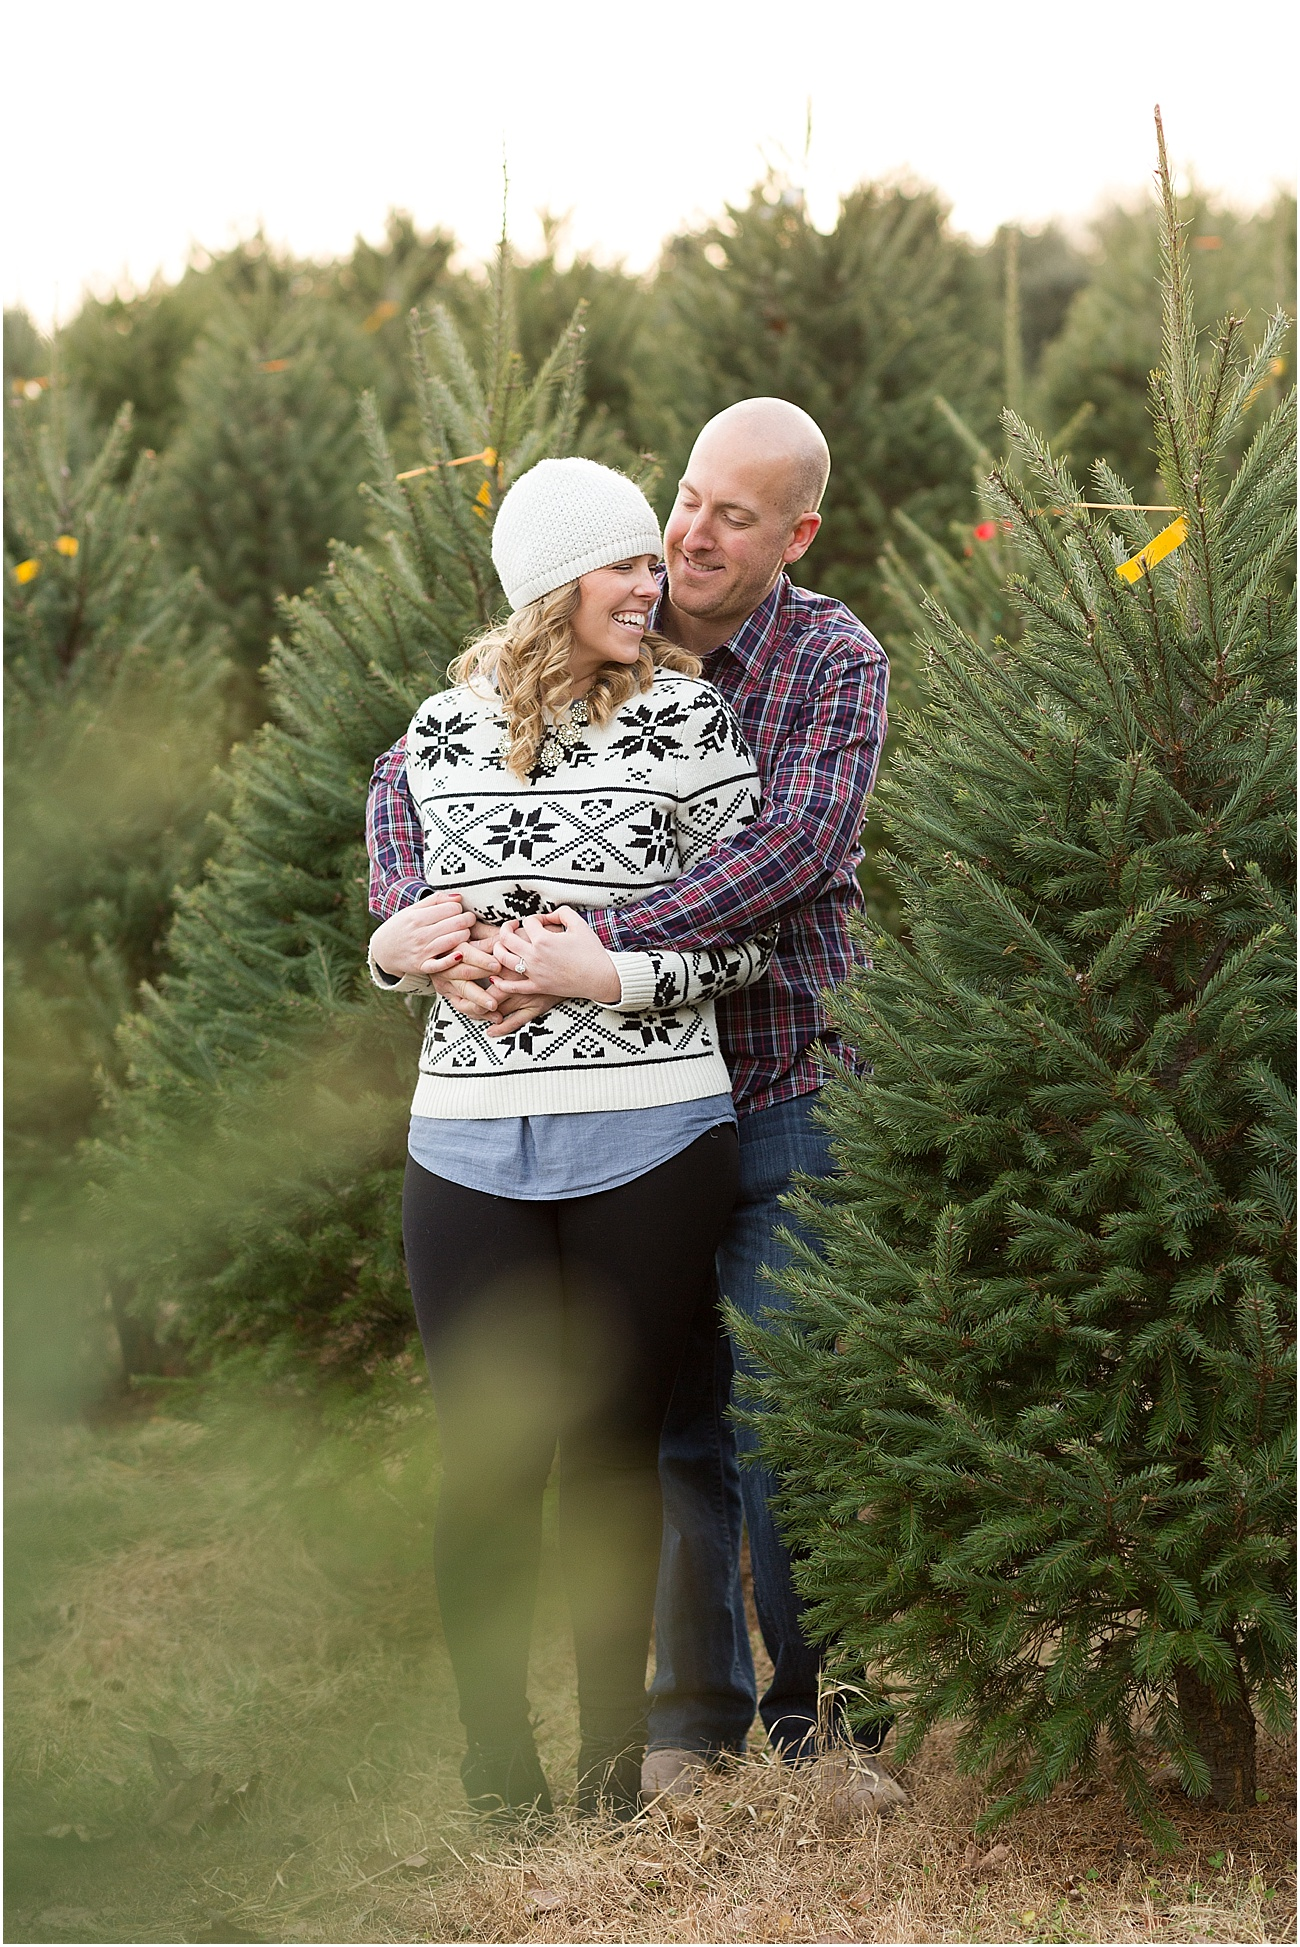 Pine_Valley_Farms_Engagement_Maryland_Wedding_Photographer_0019